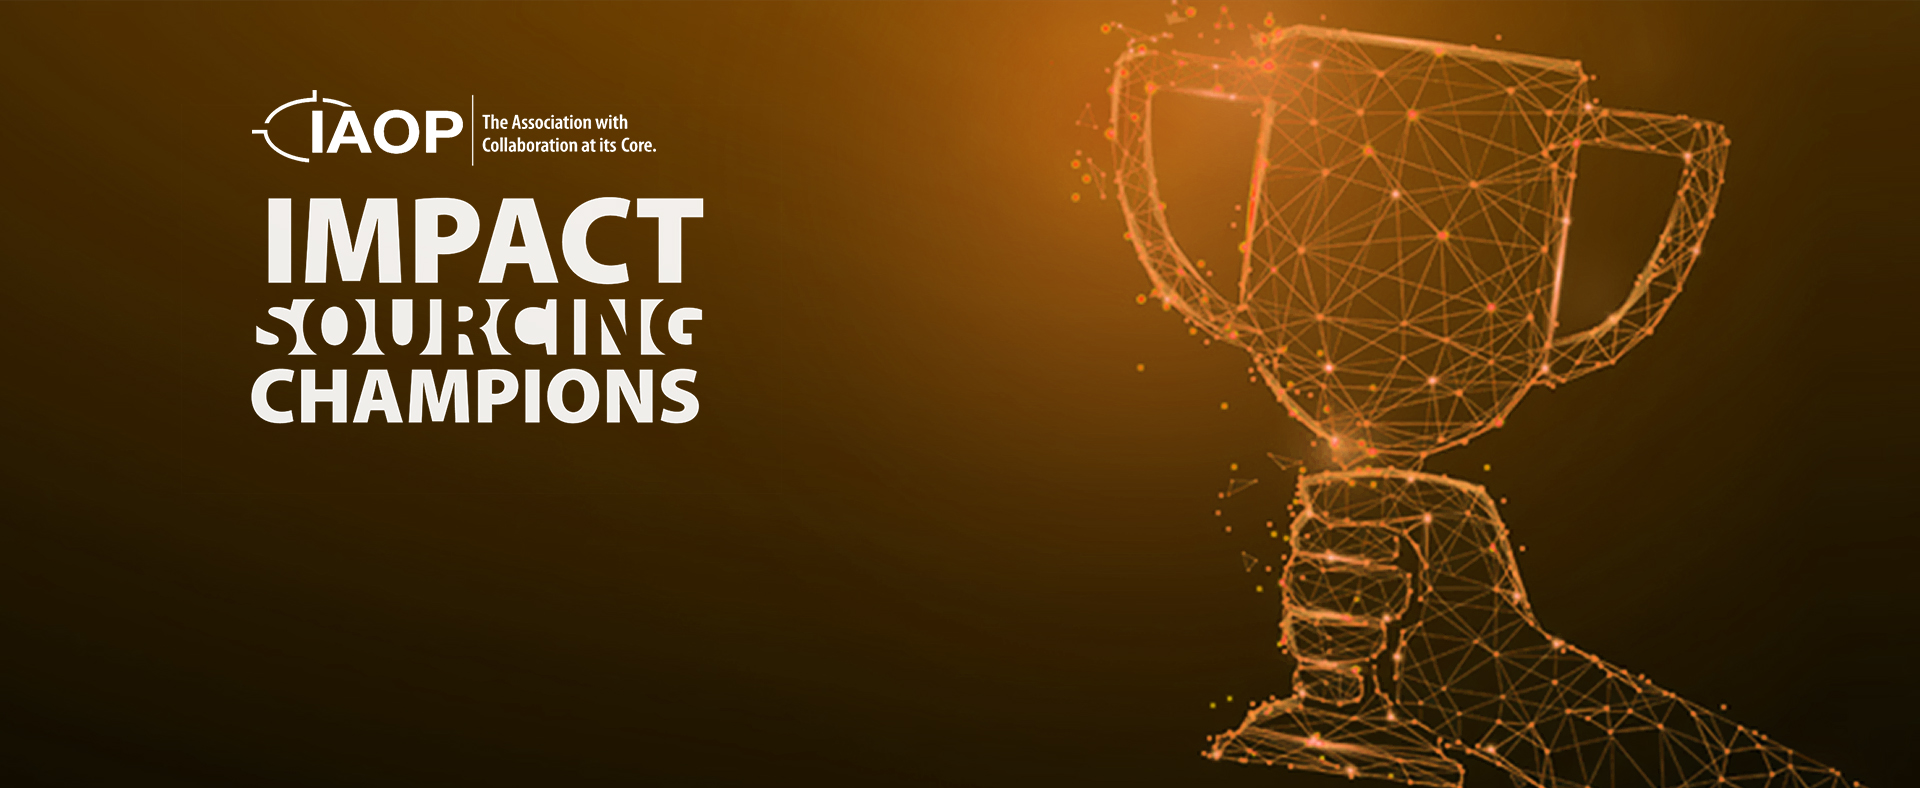 Vee Technologies Named to the 2020 IAOP Impact Sourcing Champions Index